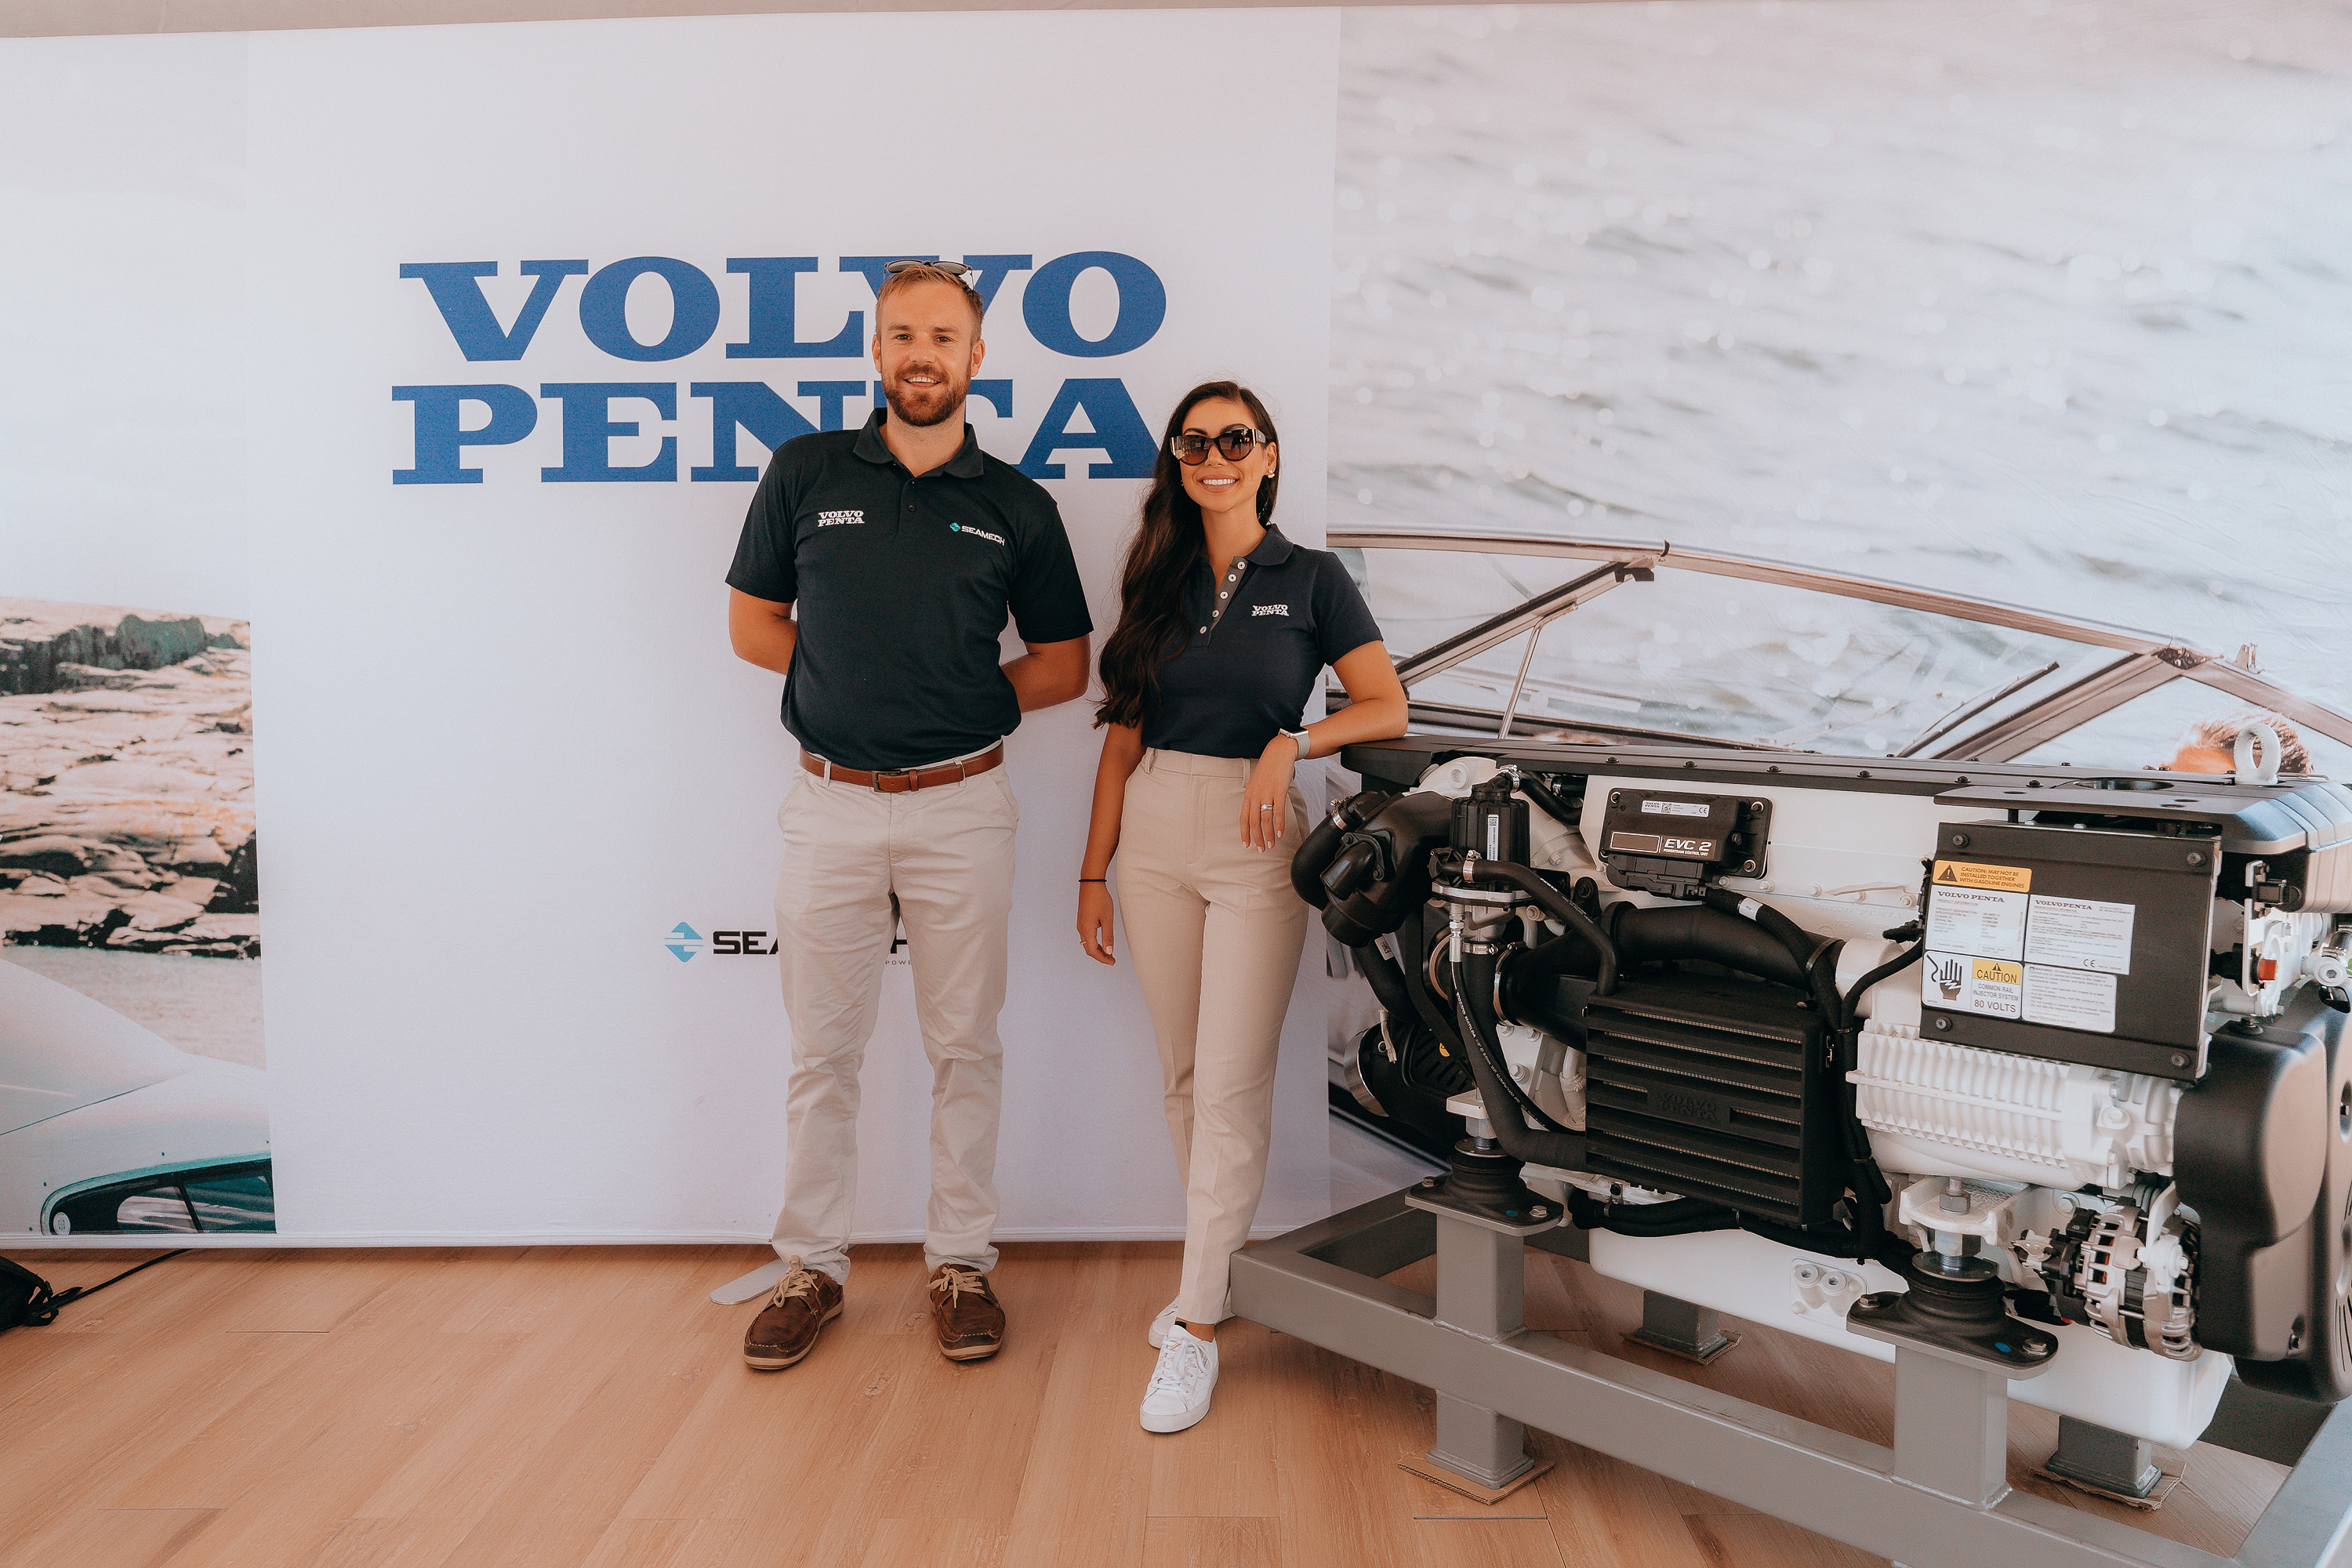 START YOUR ENGINE WITH VOLVO PENTA